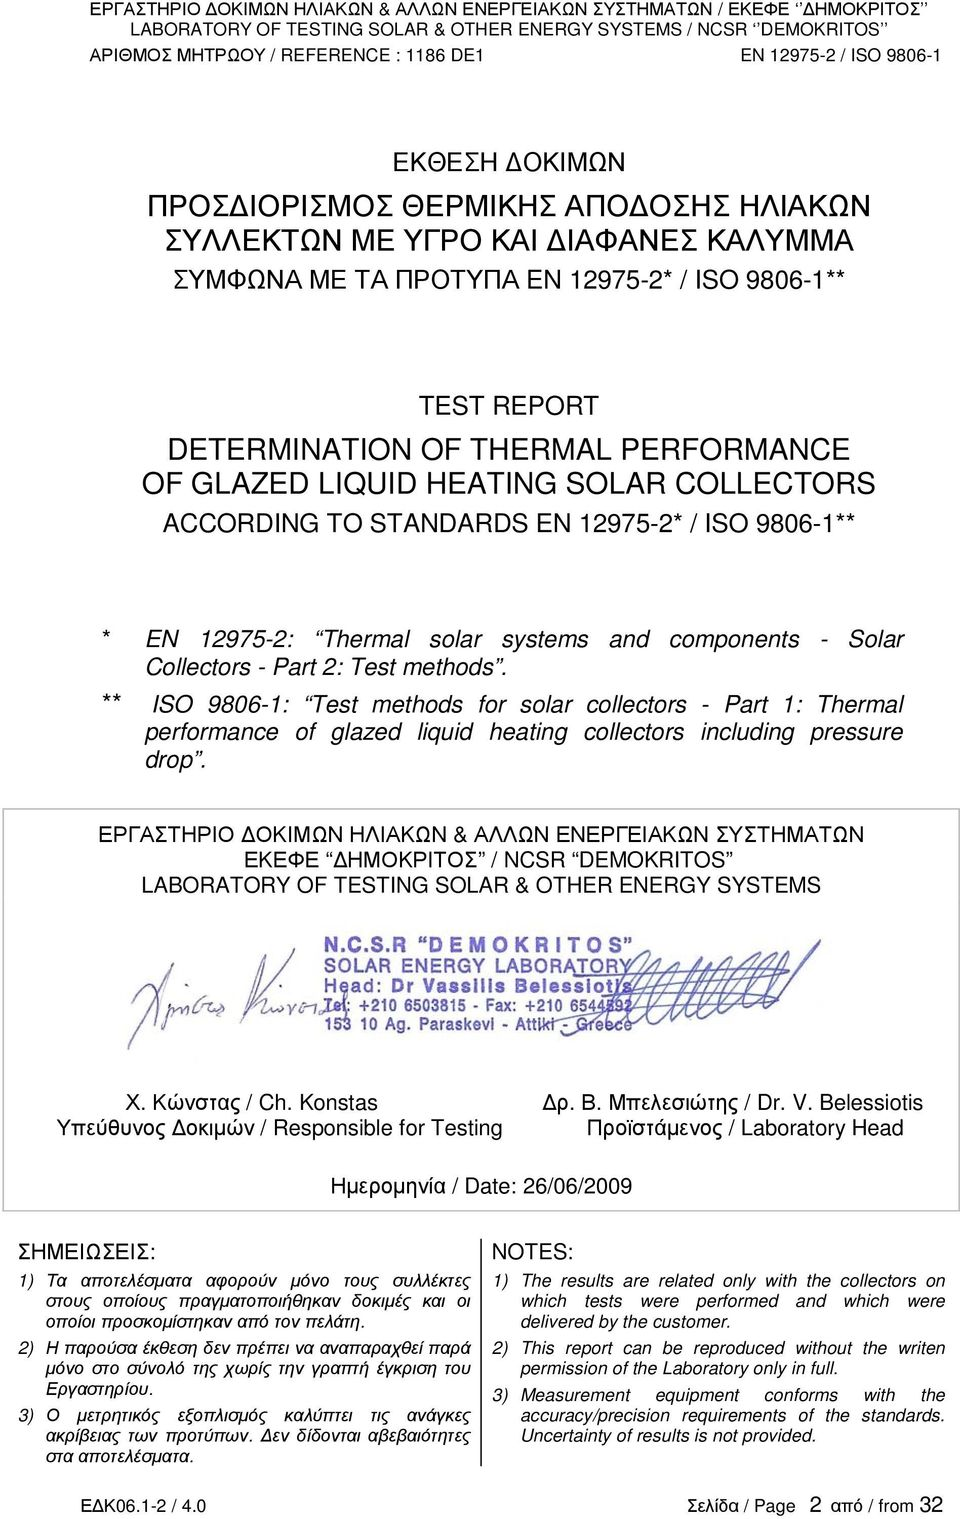 ** ISO 9806-1: Tes mehods for solar collecors - Par 1: Thermal performance of glazed liquid heaing collecors including pressure drop.